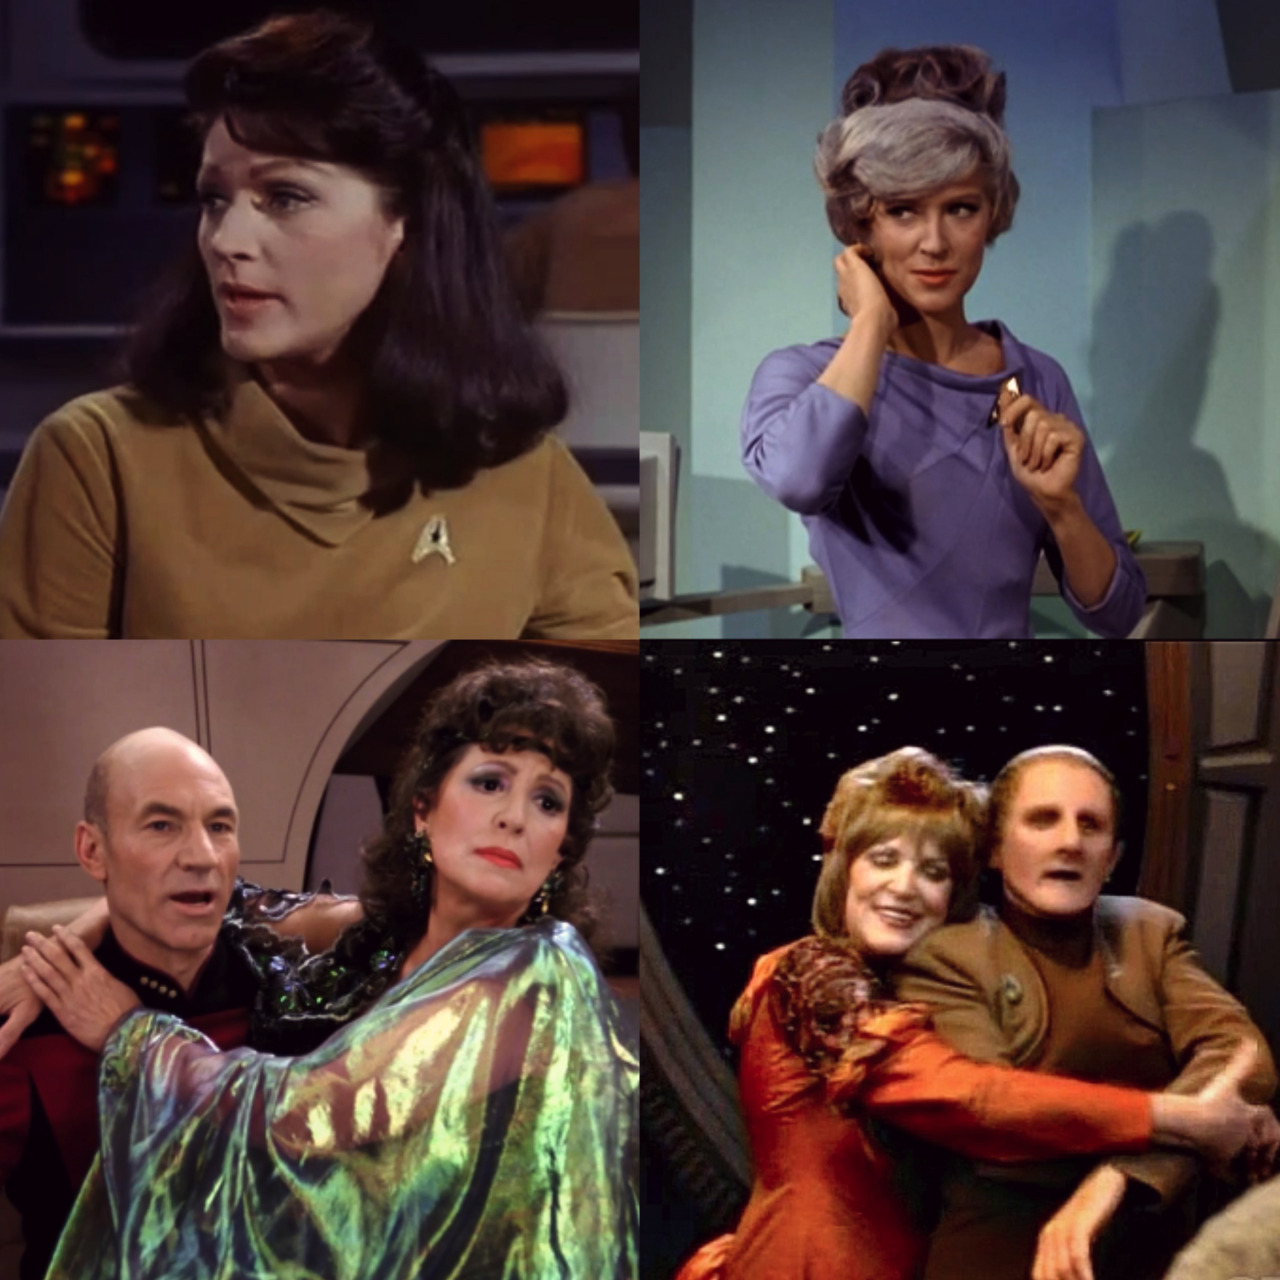 Star Trek - Sci Fi Blog : STAR TREK'S 50th ANNIVERSARY